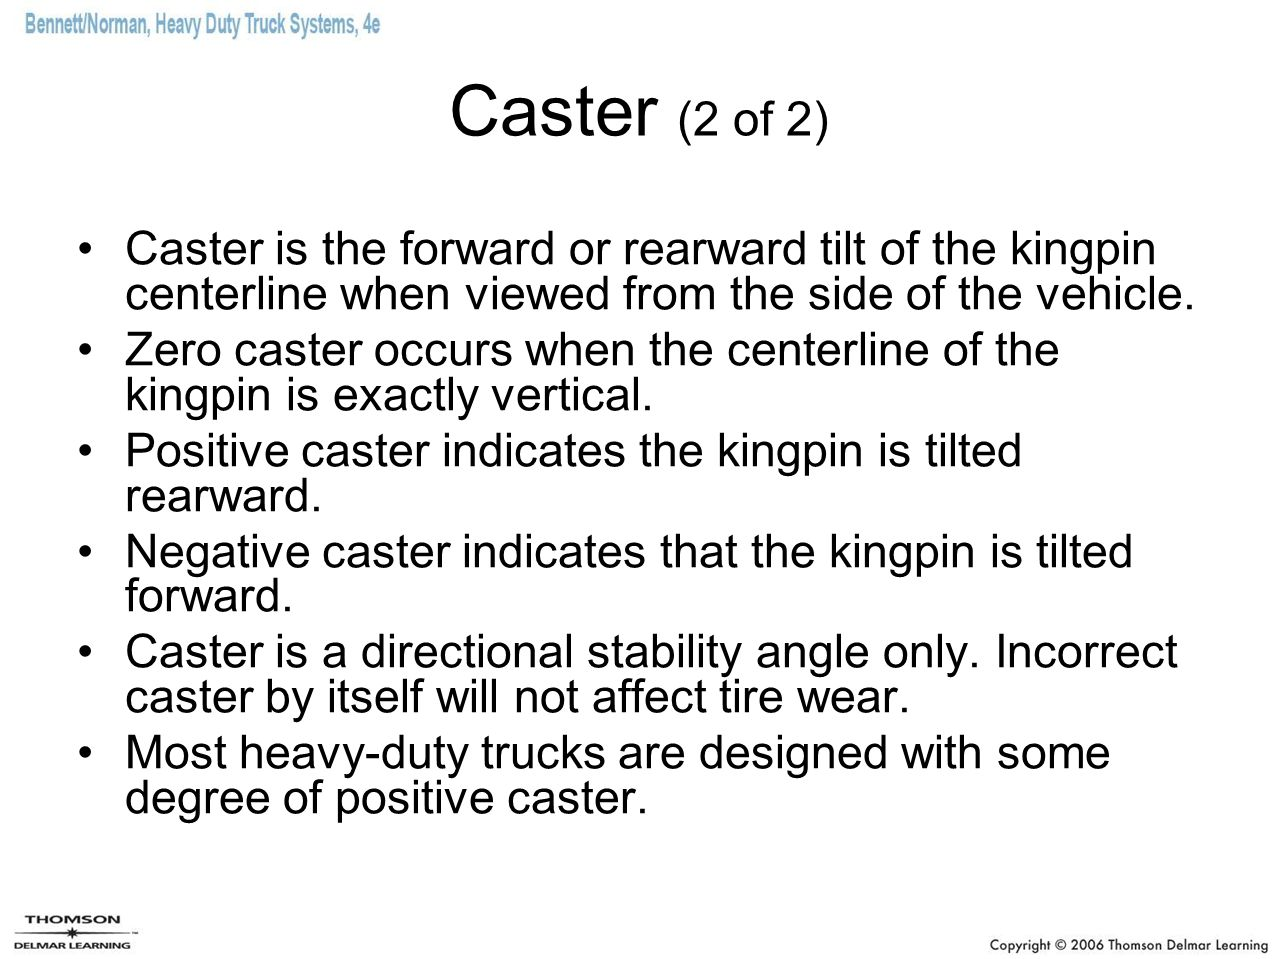 Caster (2 of 2) Caster is the forward or rearward tilt of the kingpin centerline when viewed from the side of the vehicle.